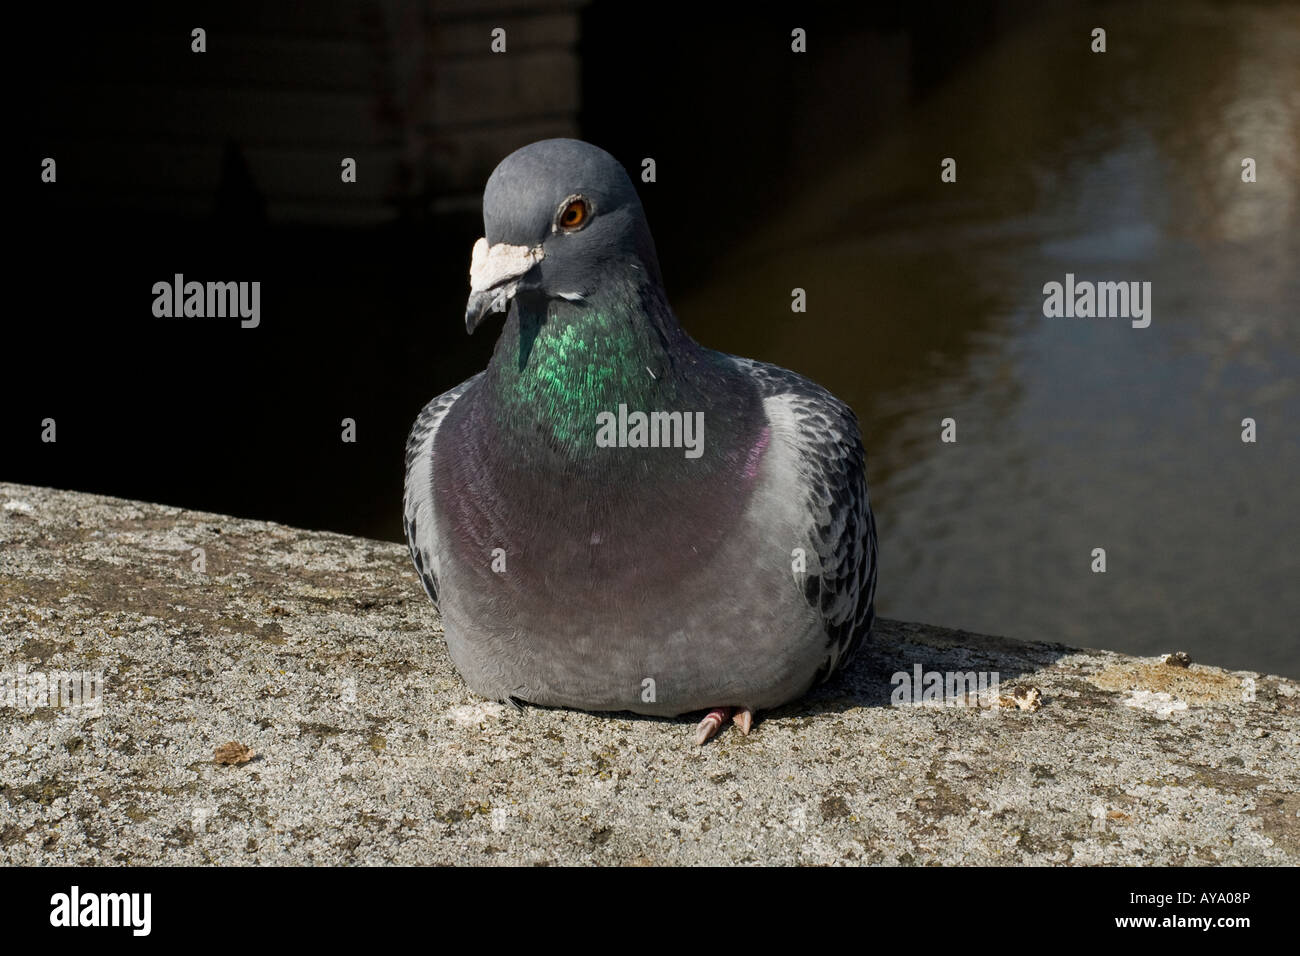 A common pigeon sat on a wall in front of river - Stock Image